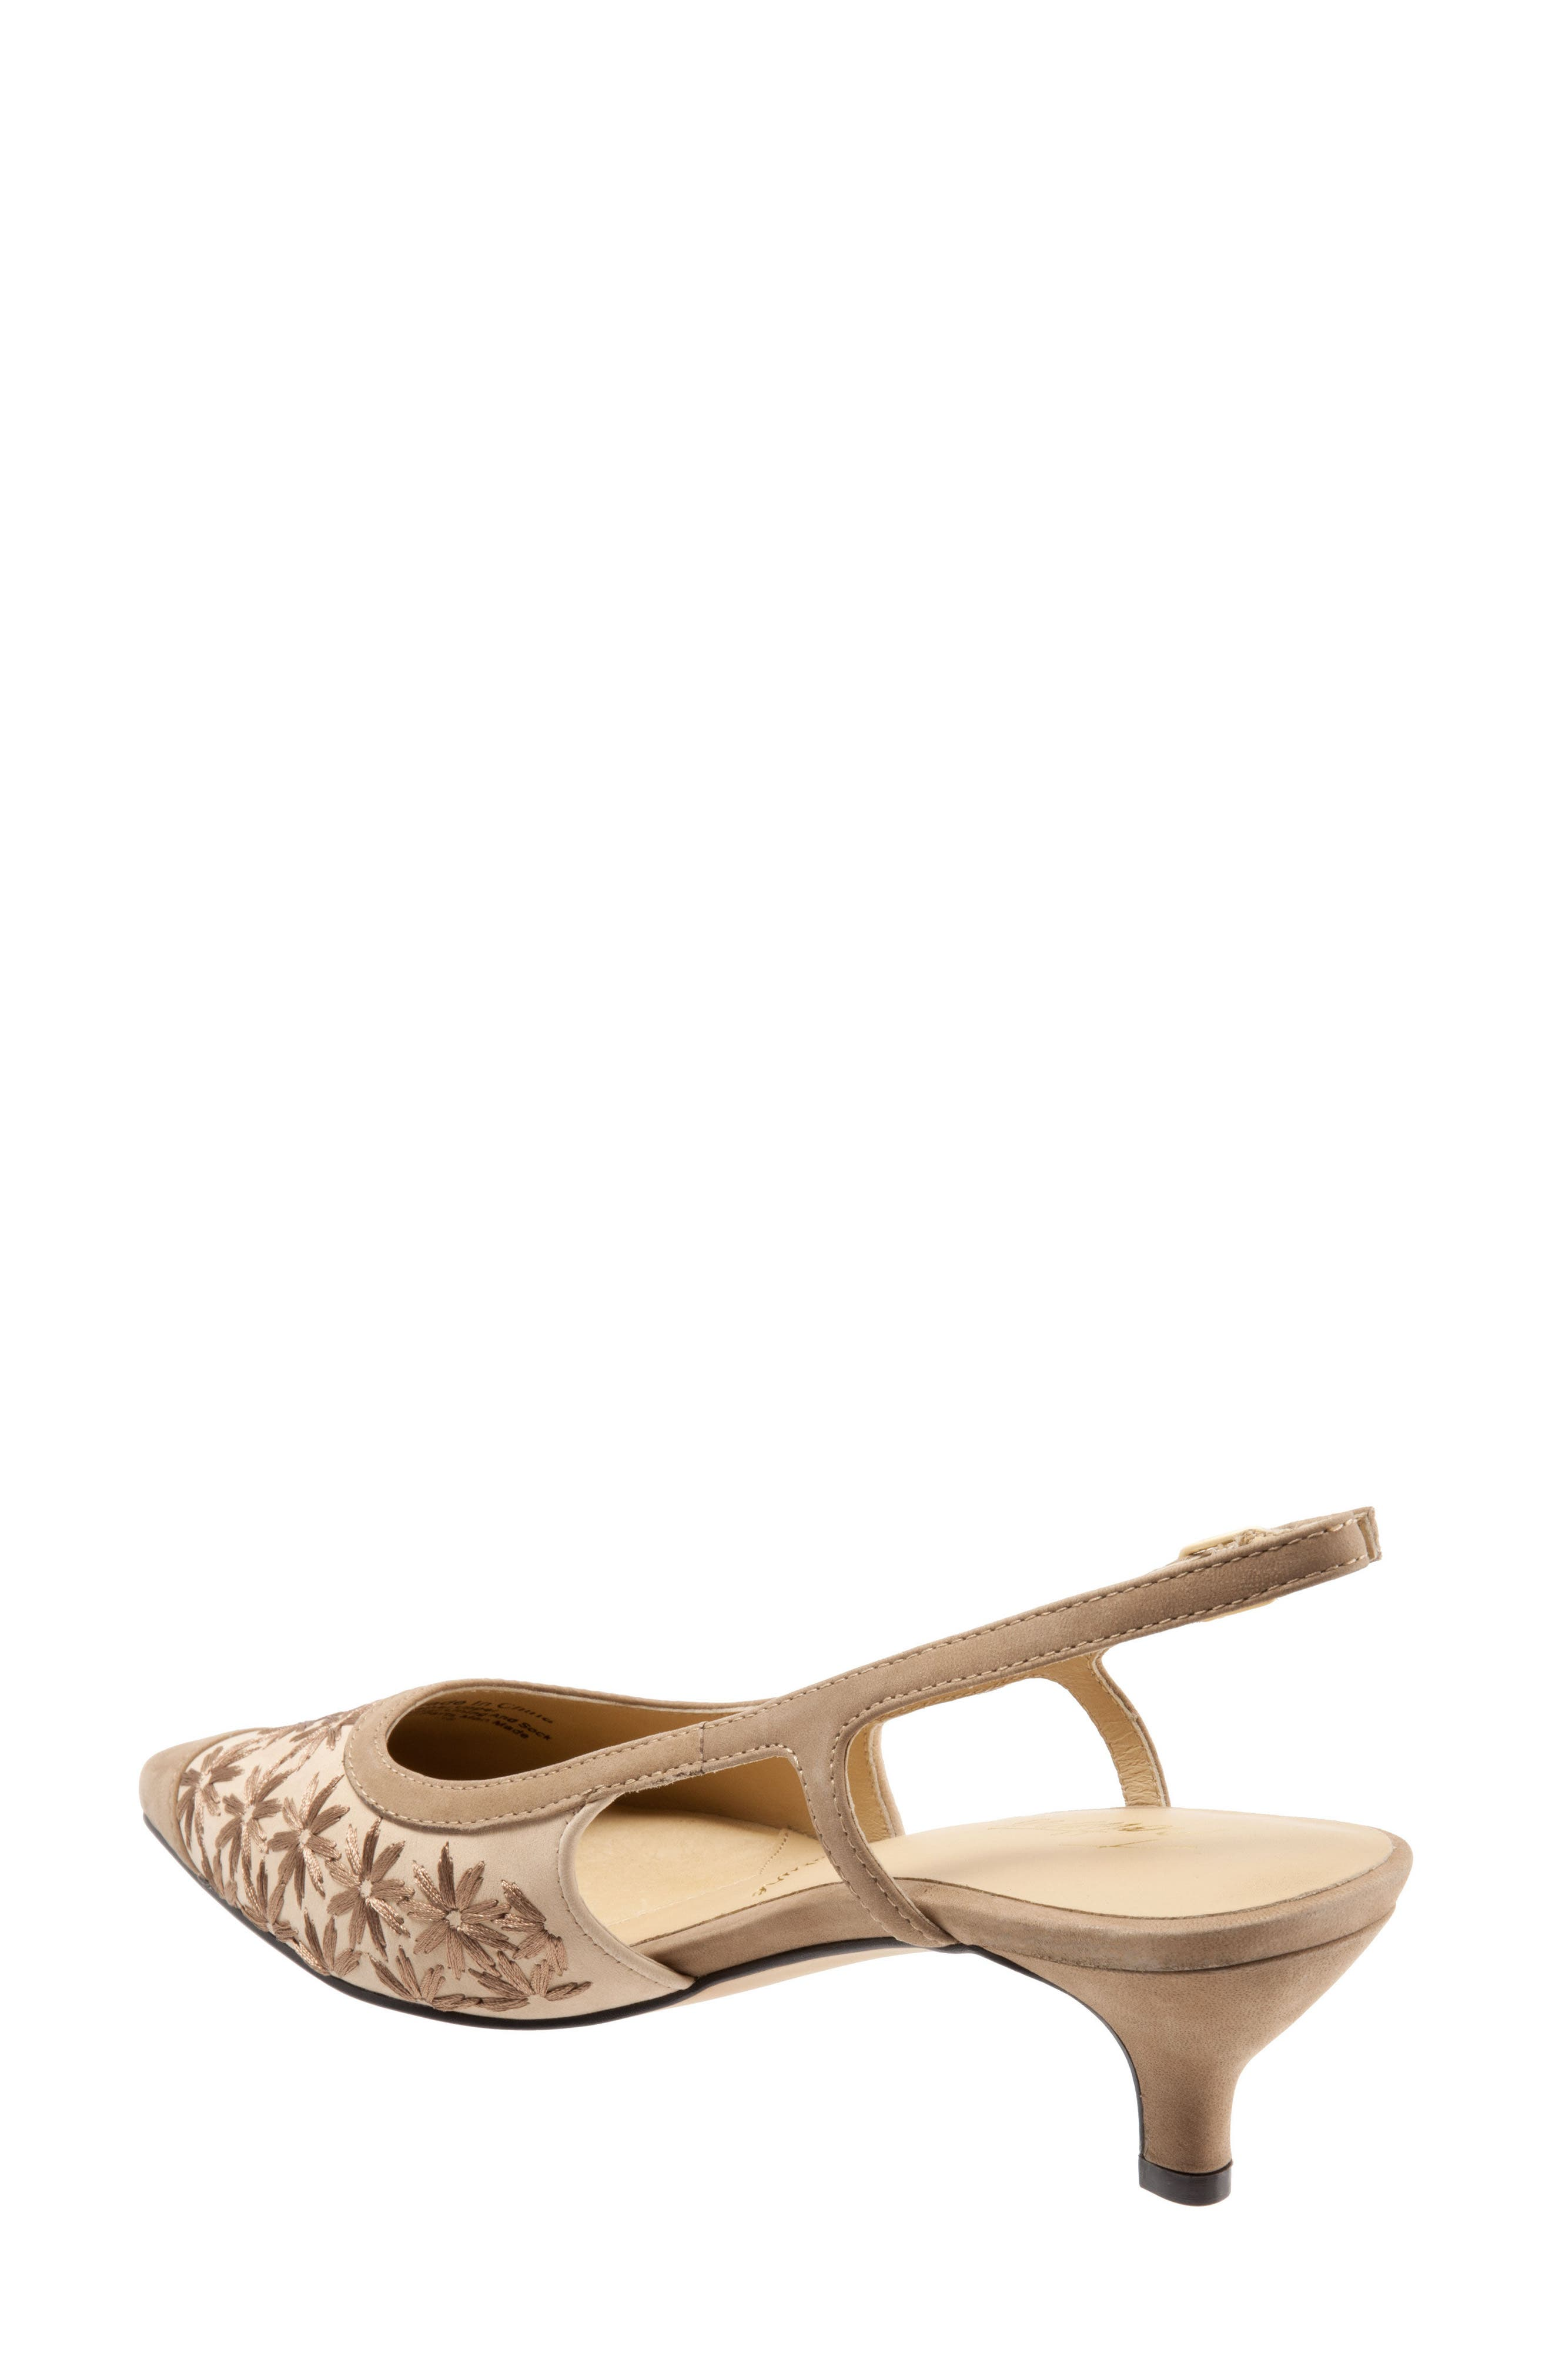 TROTTERS, 'Kimberly' Woven Leather Slingback Pump, Alternate thumbnail 2, color, DARK TAN/ SAND/ BRONZE LEATHER